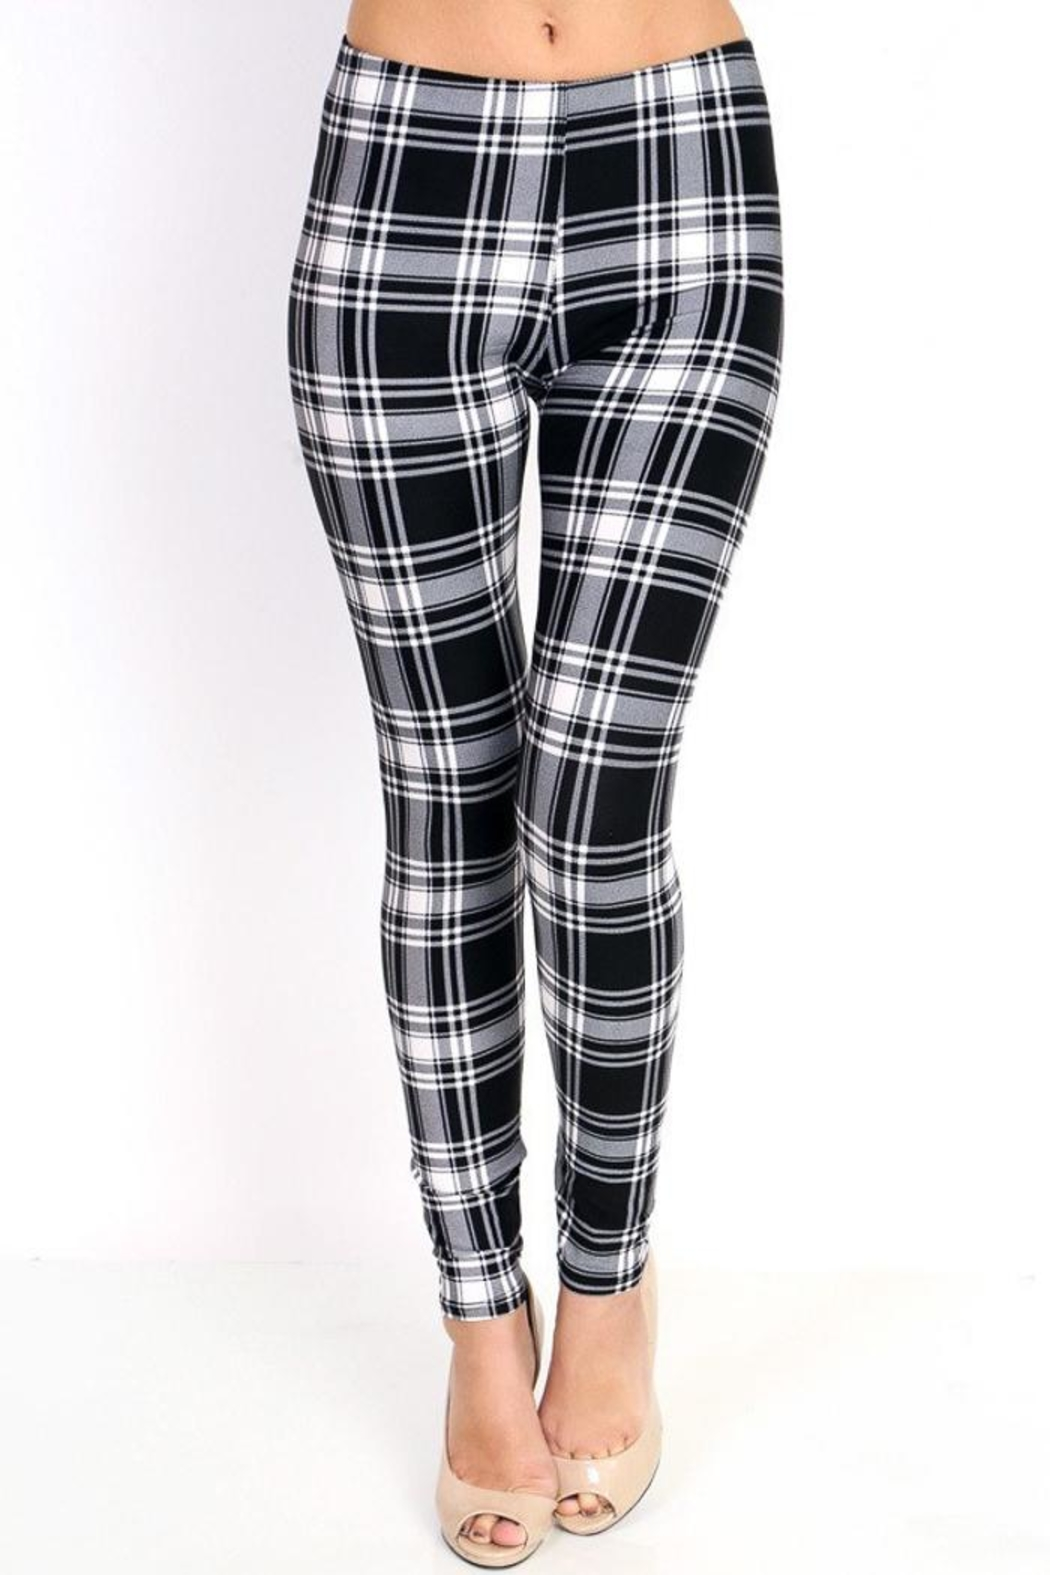 People Outfitter Black&White Plaid Leggings - Main Image